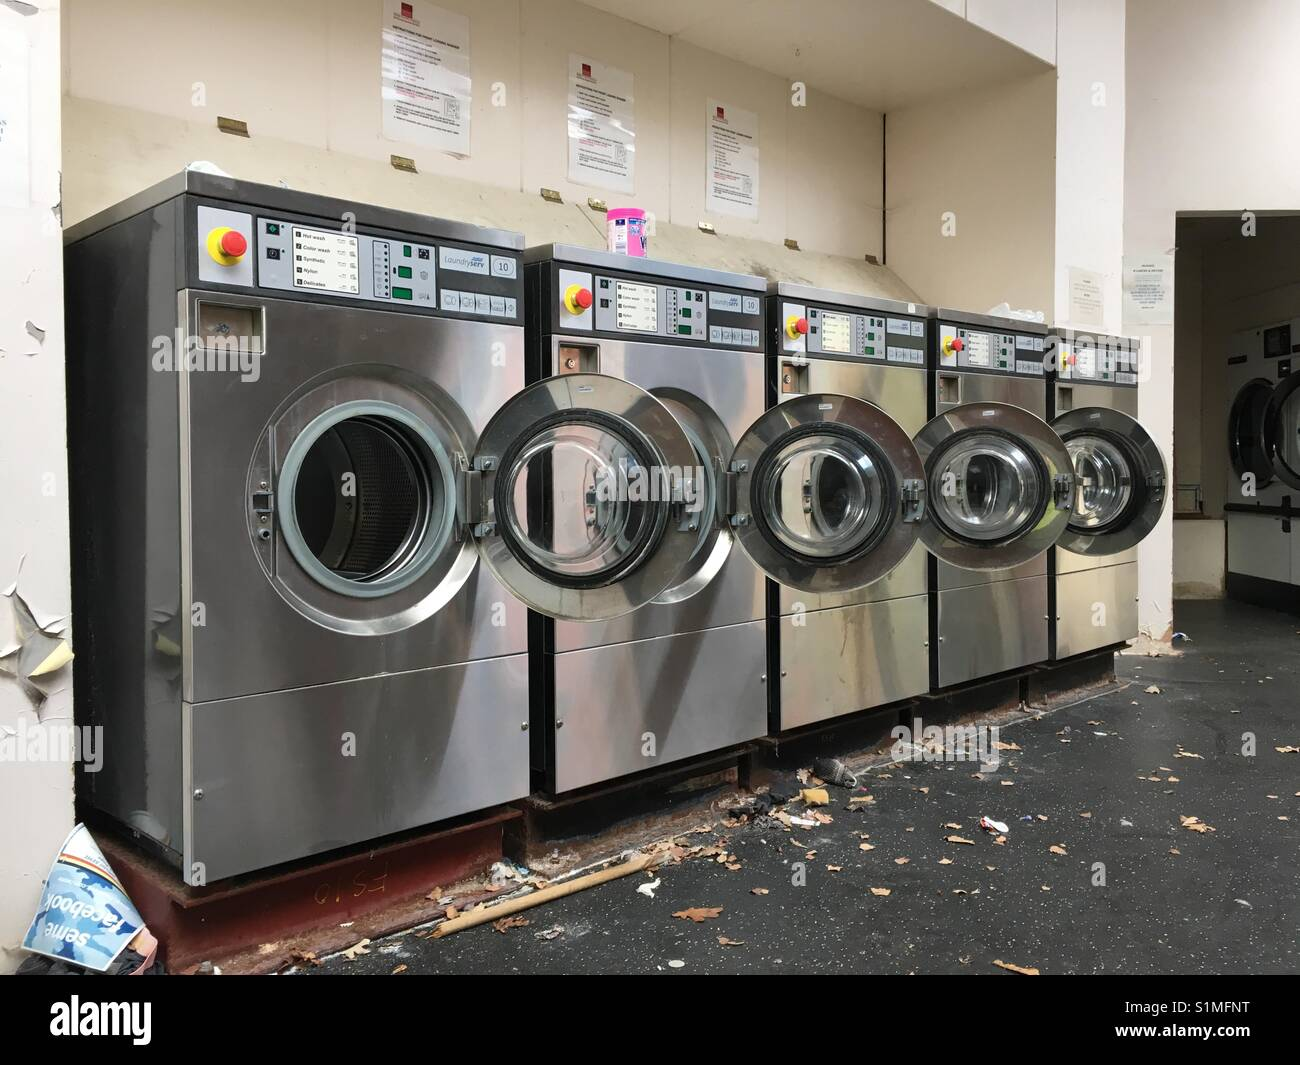 Stainless Steel Washing Machines Stockfotos & Stainless Steel ...